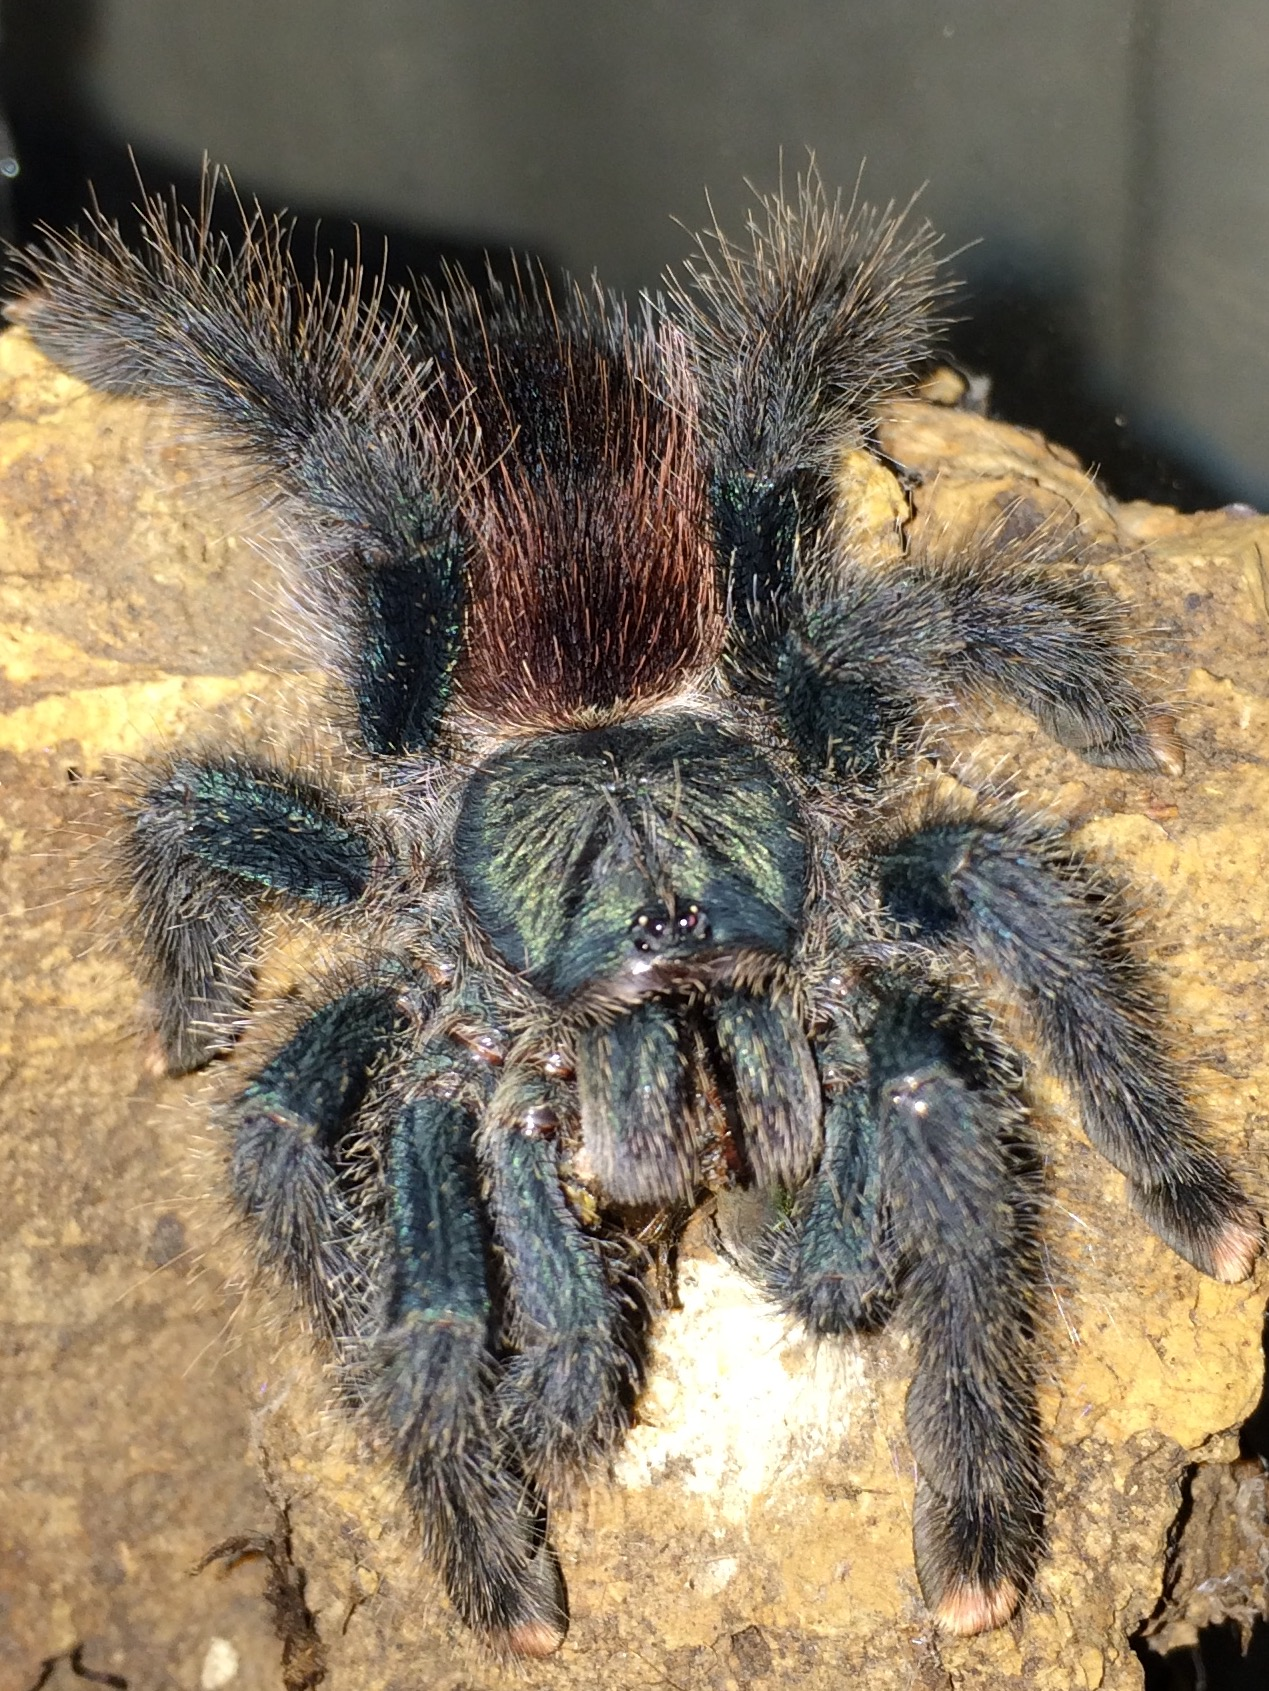 A Pictorial Guide To My Tarantula Collection | Dave The Bug Guy